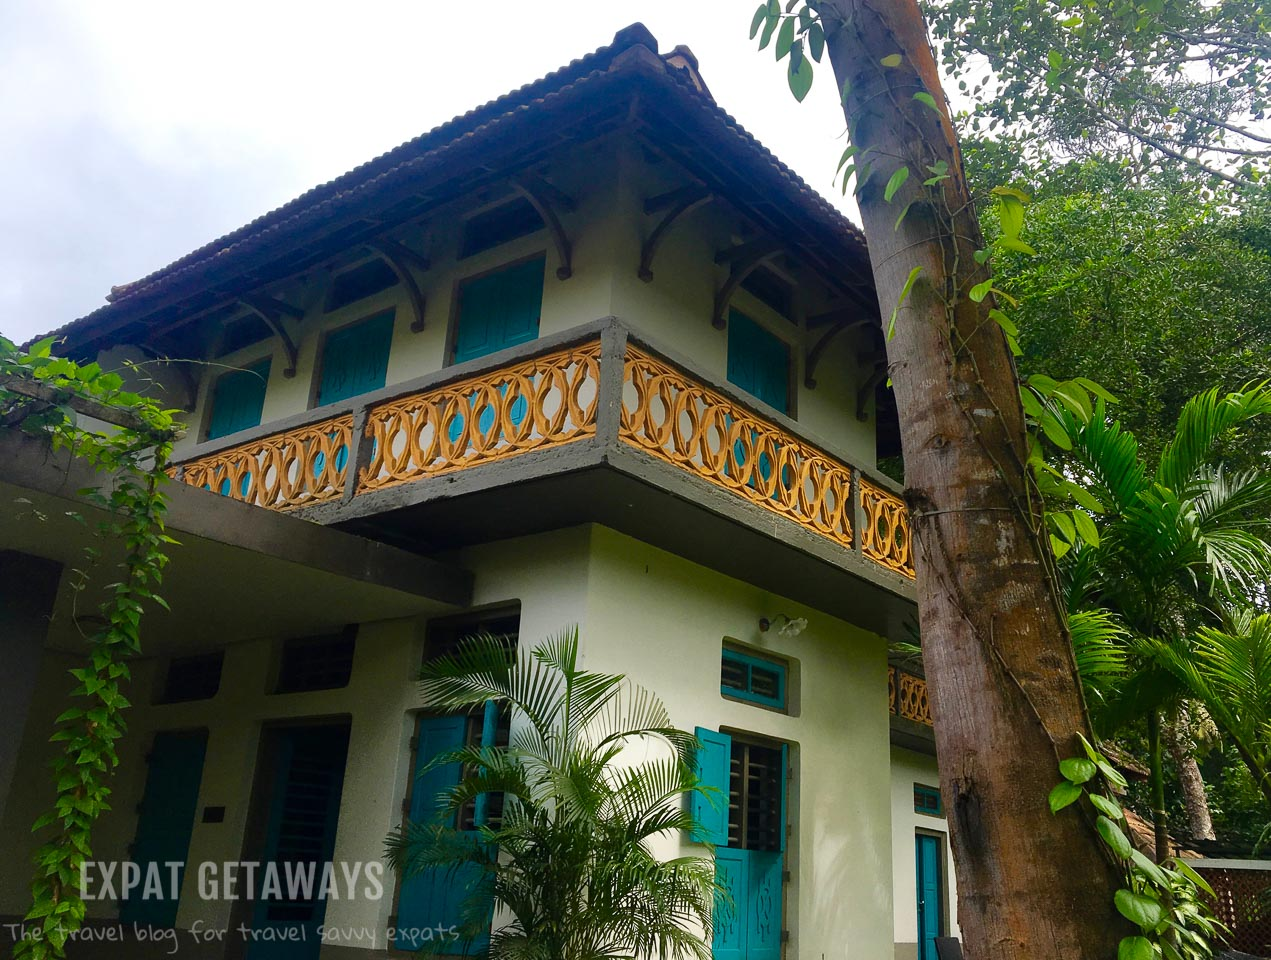 The original family home at Indian Summer House. Expat Getaways - One Week in Kerala, India.